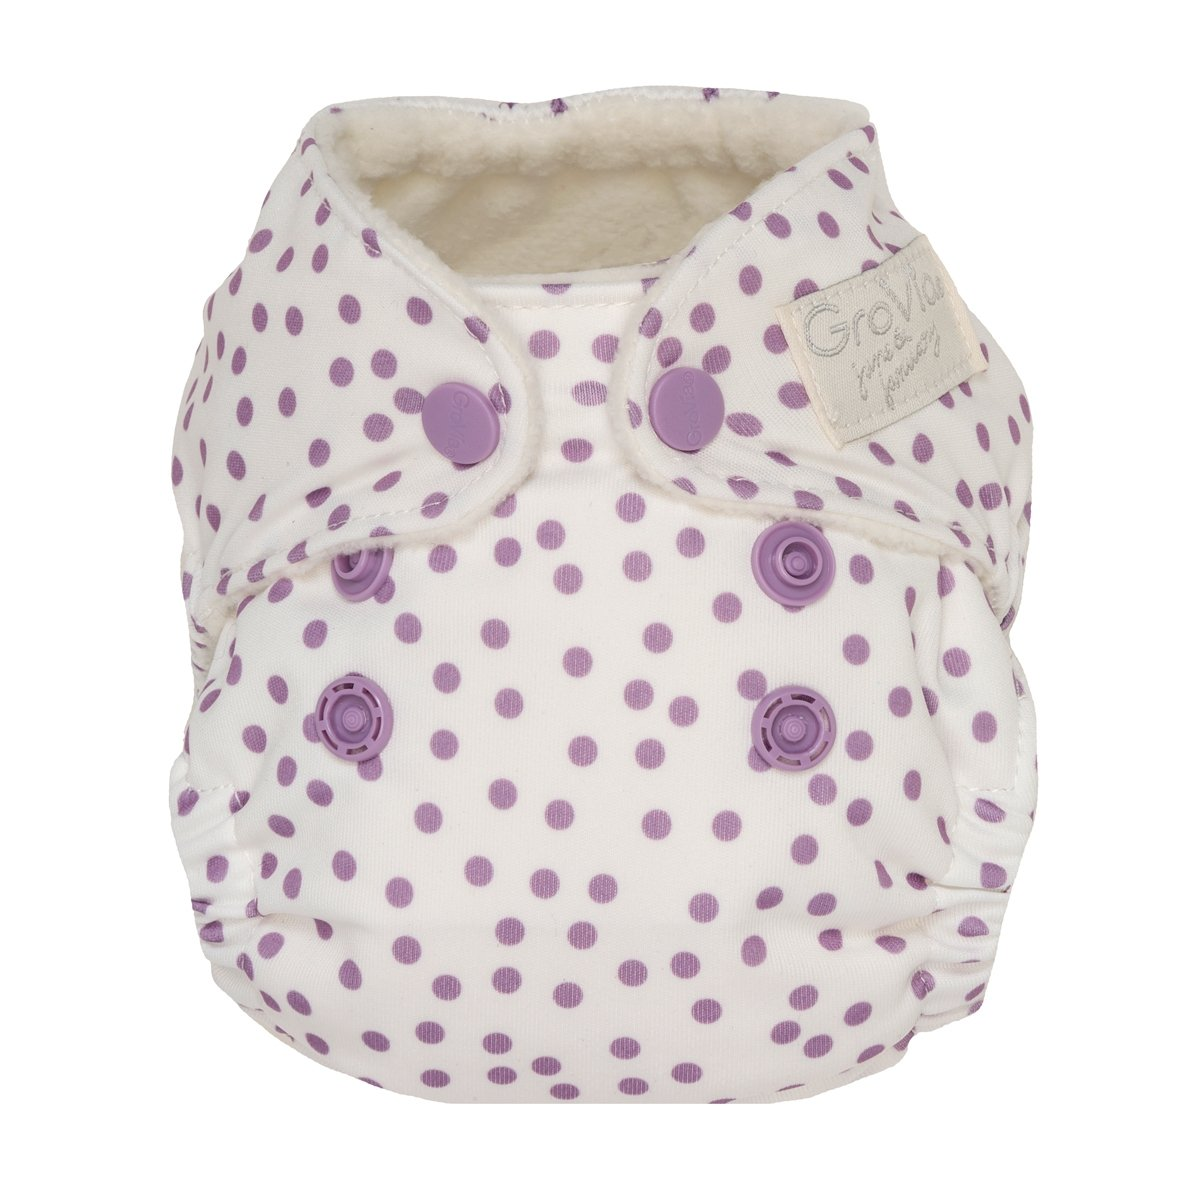 grovia newborn all in one -  Violet Dot